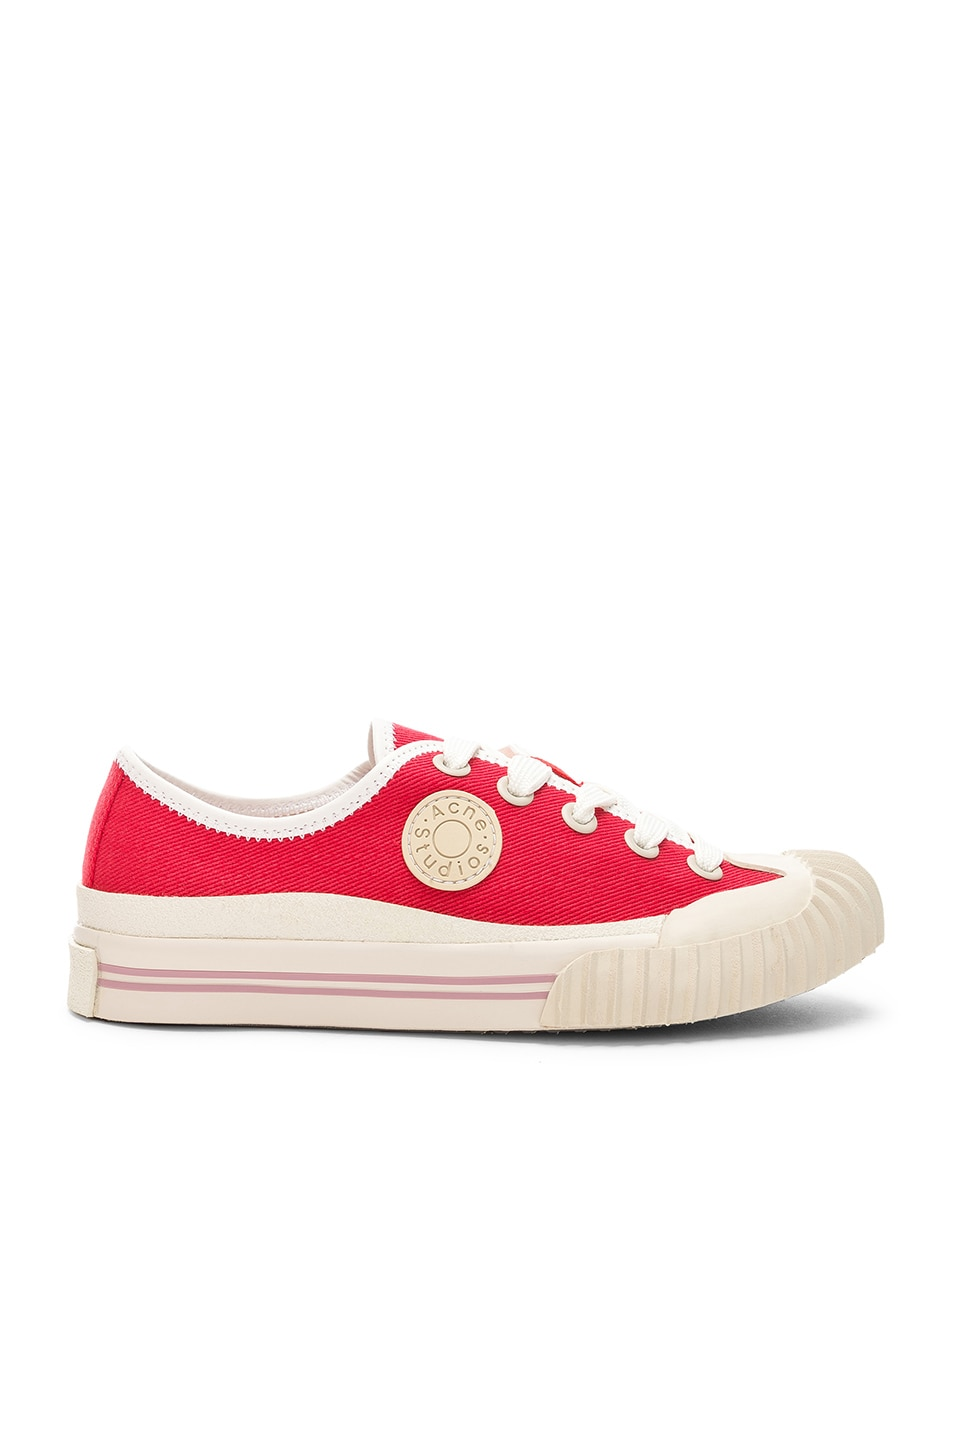 Image 1 of Acne Studios x Bla Konst Sneaker in Coral Red